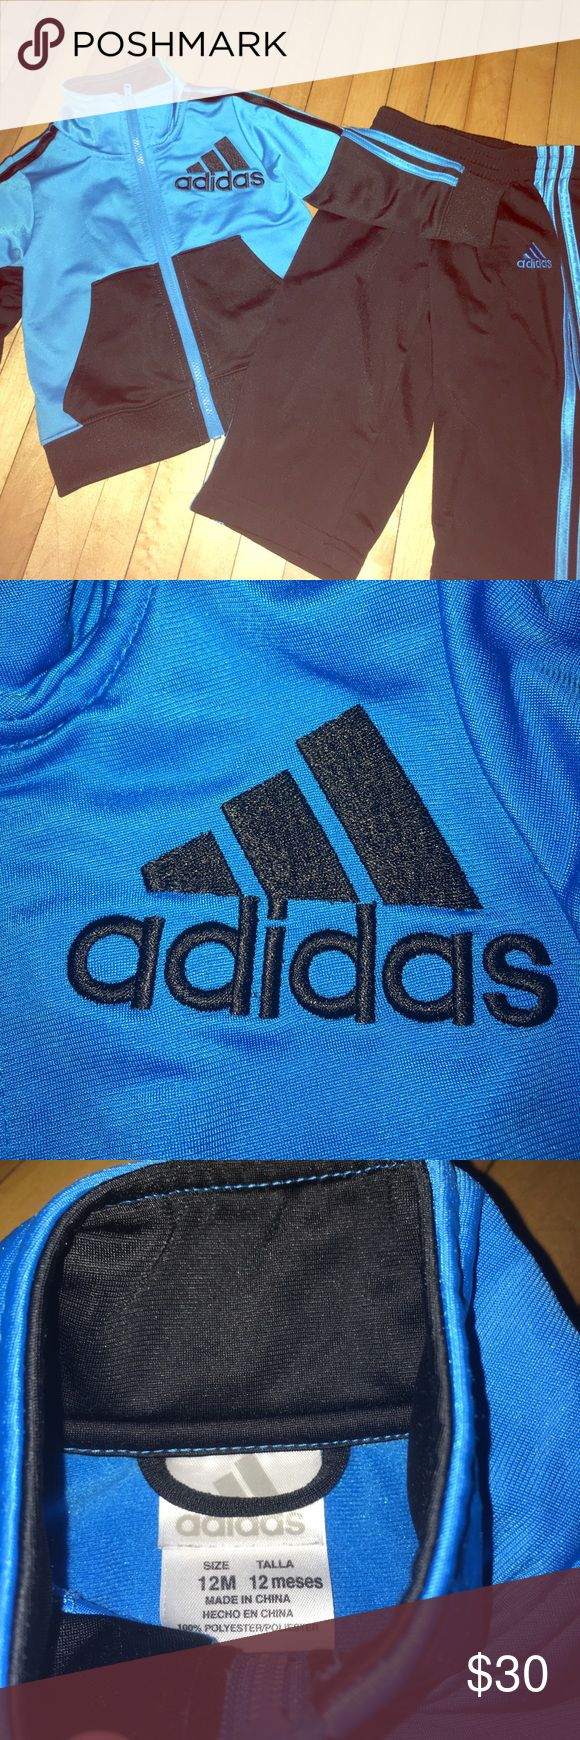 Adidas brand infant 12 month jumpsuit Infant size 12 month jumpsuit. Barely worn or ever used. No pilling. Like new. Maybe worn once. 12 month size. My son grew very fast. Made in China 100% polyester. adidas Matching Sets